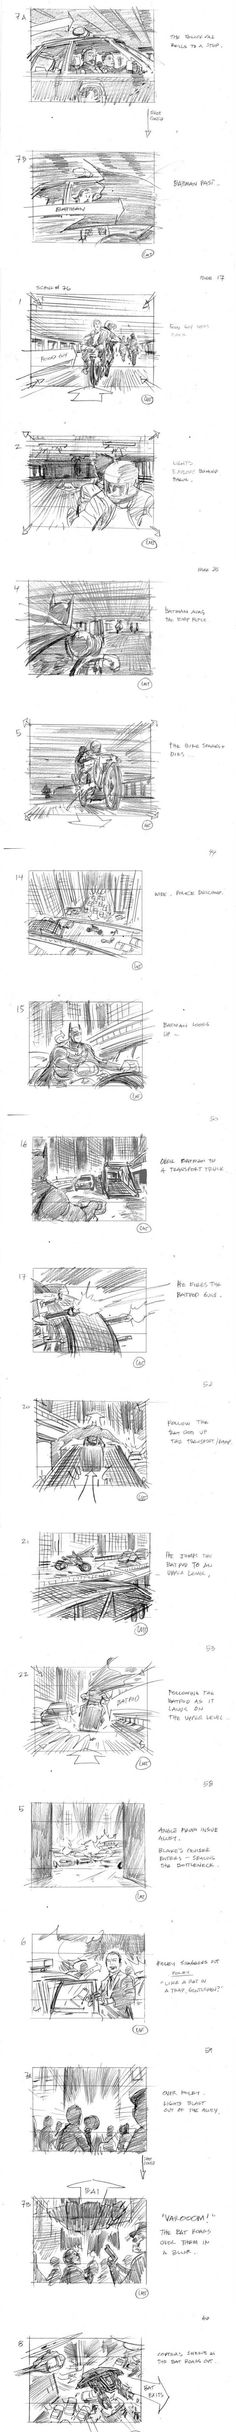 Beyond Drawing Basics Drawing Storyboards For The Coen Brothers